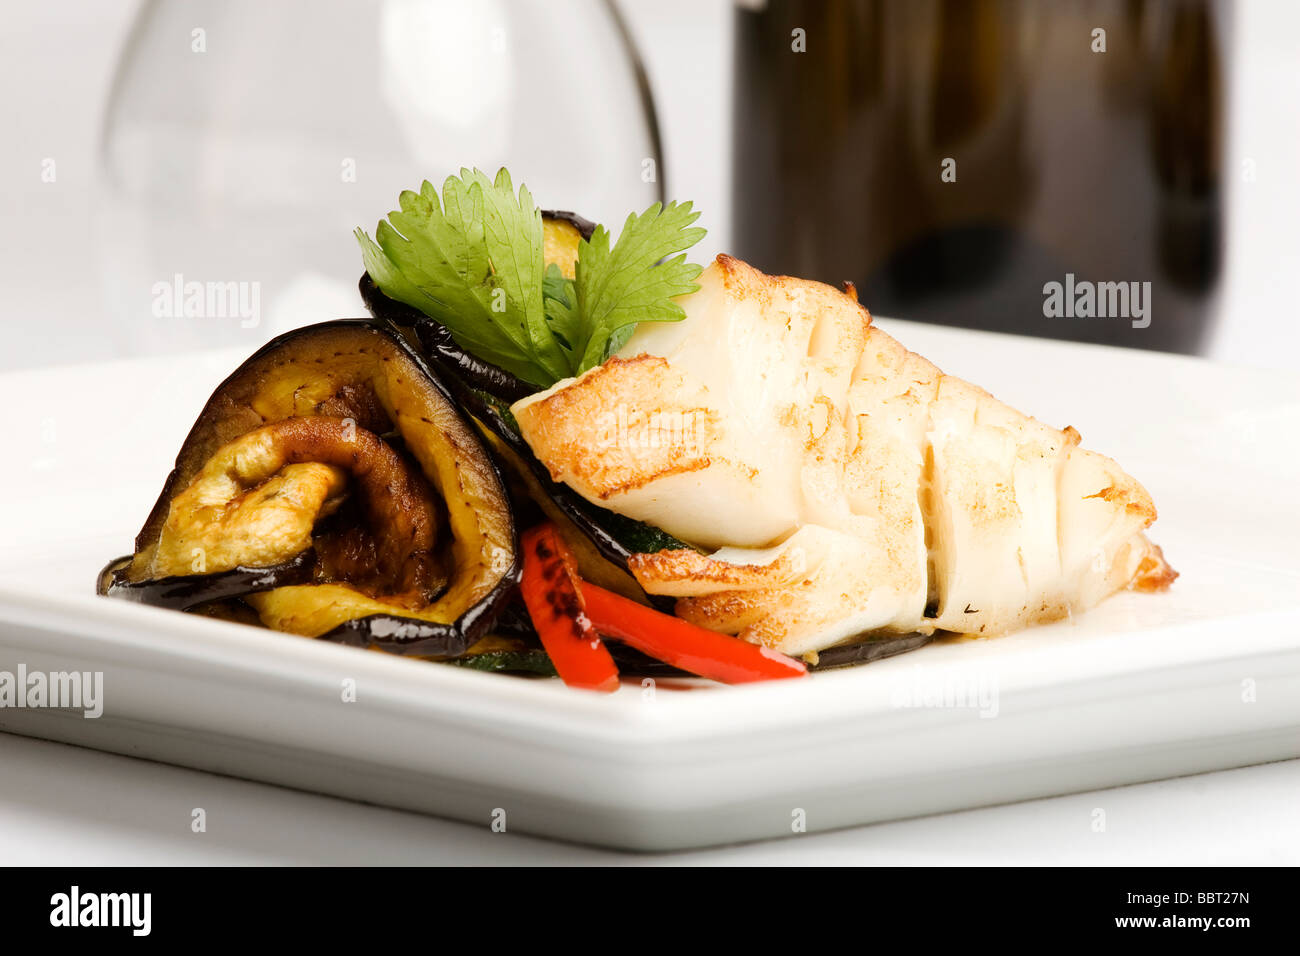 Baked cod with side of eggplant and peppers - Stock Image